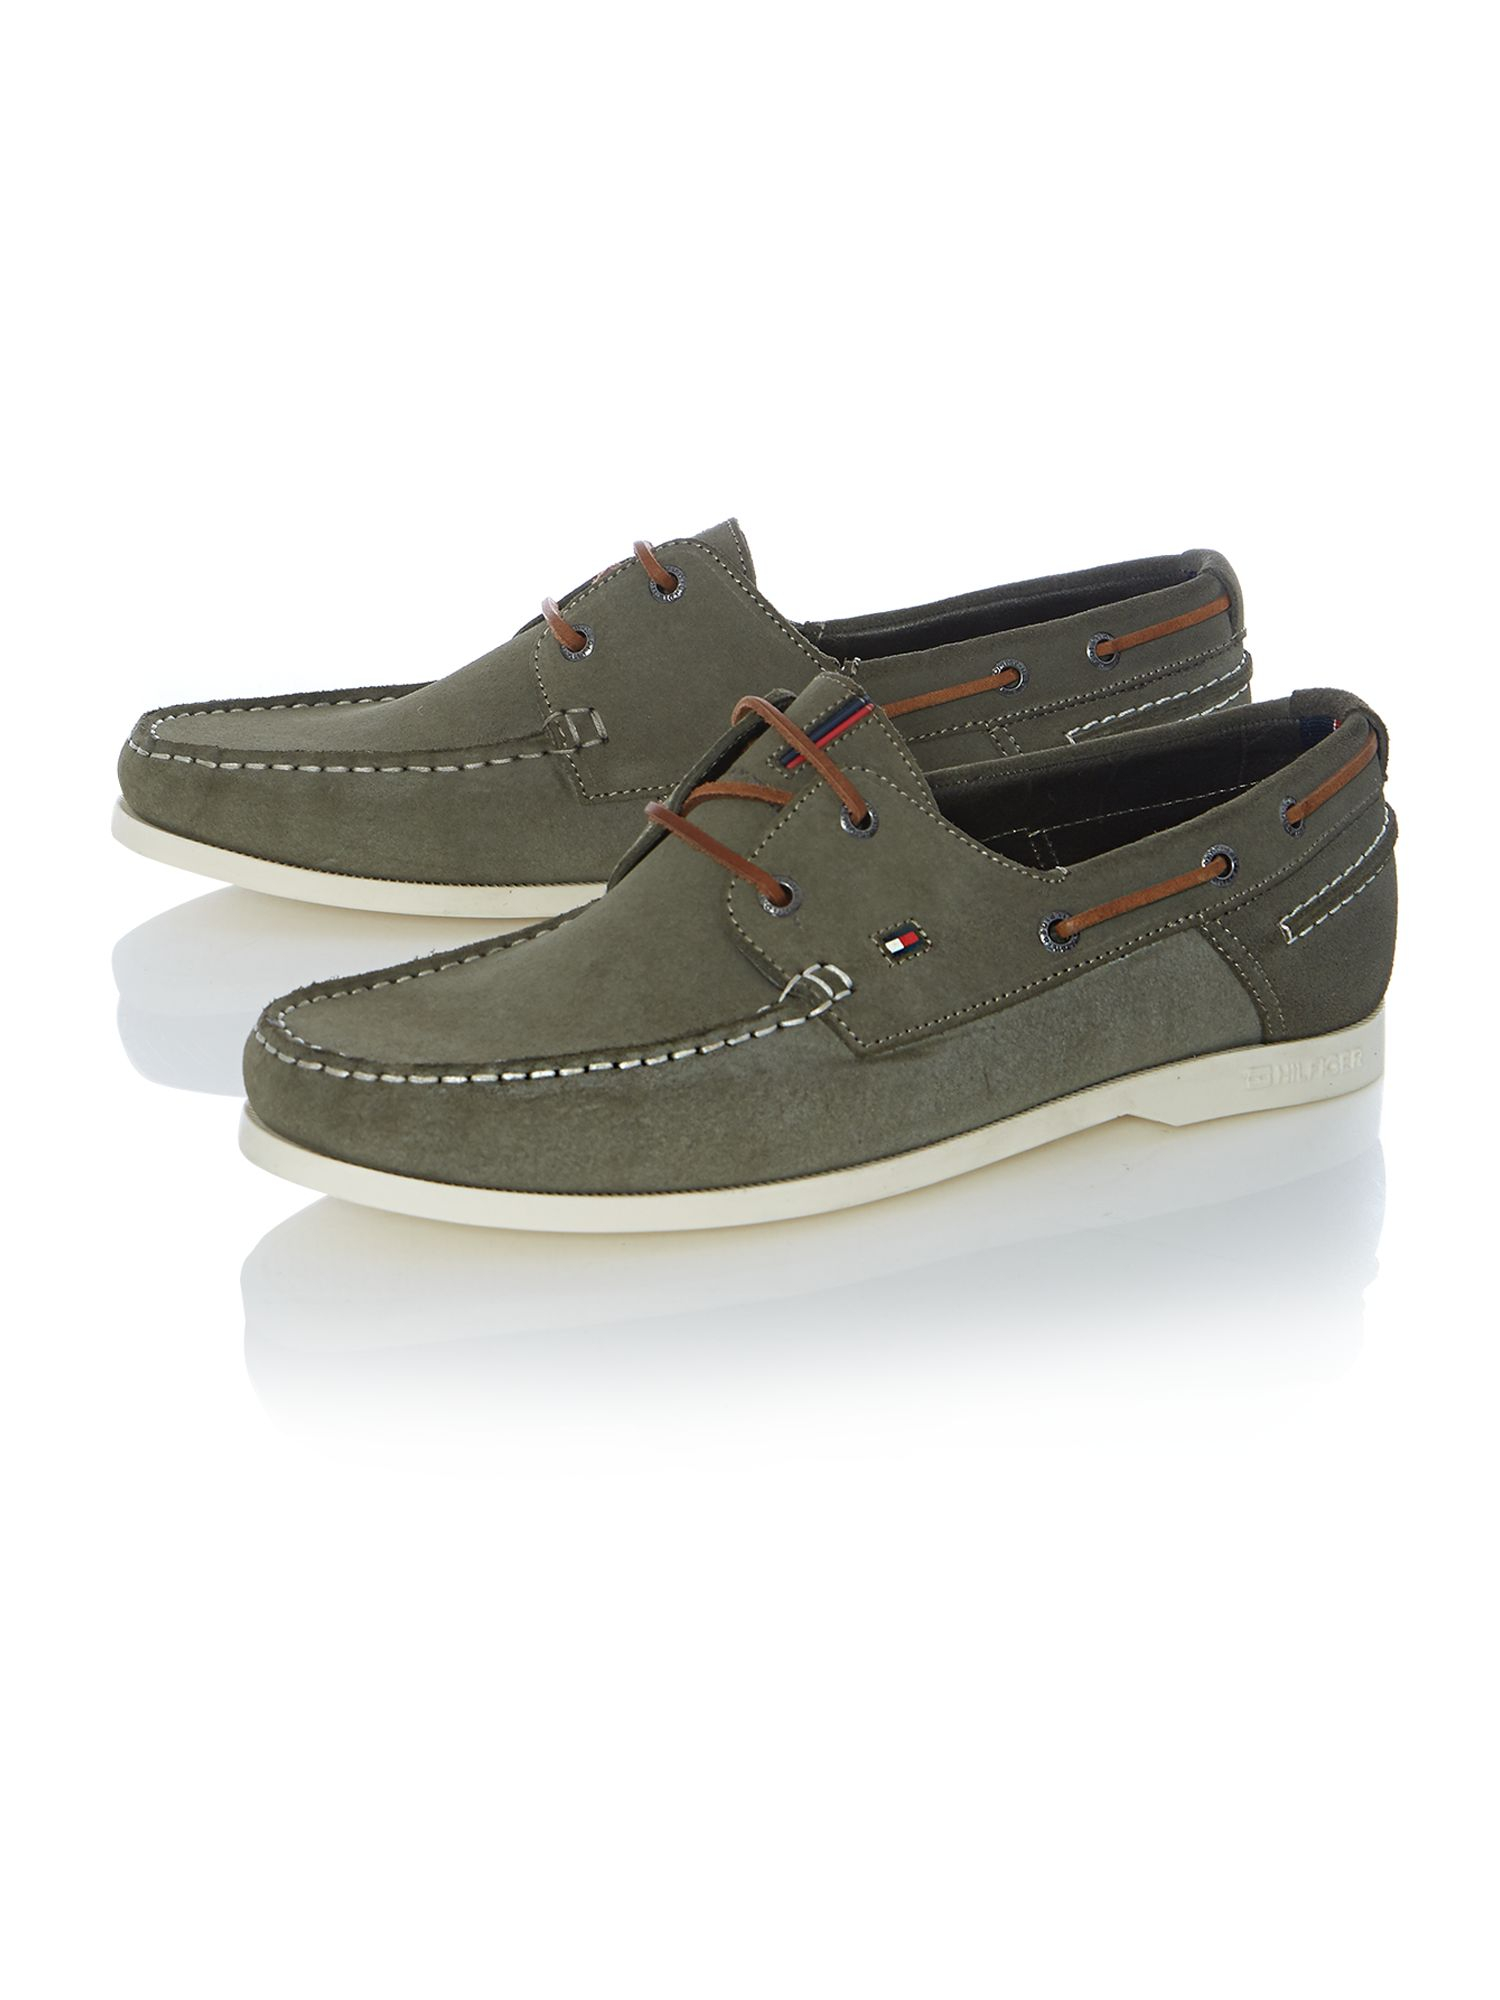 hilfiger chino lace up casual boat shoes in green